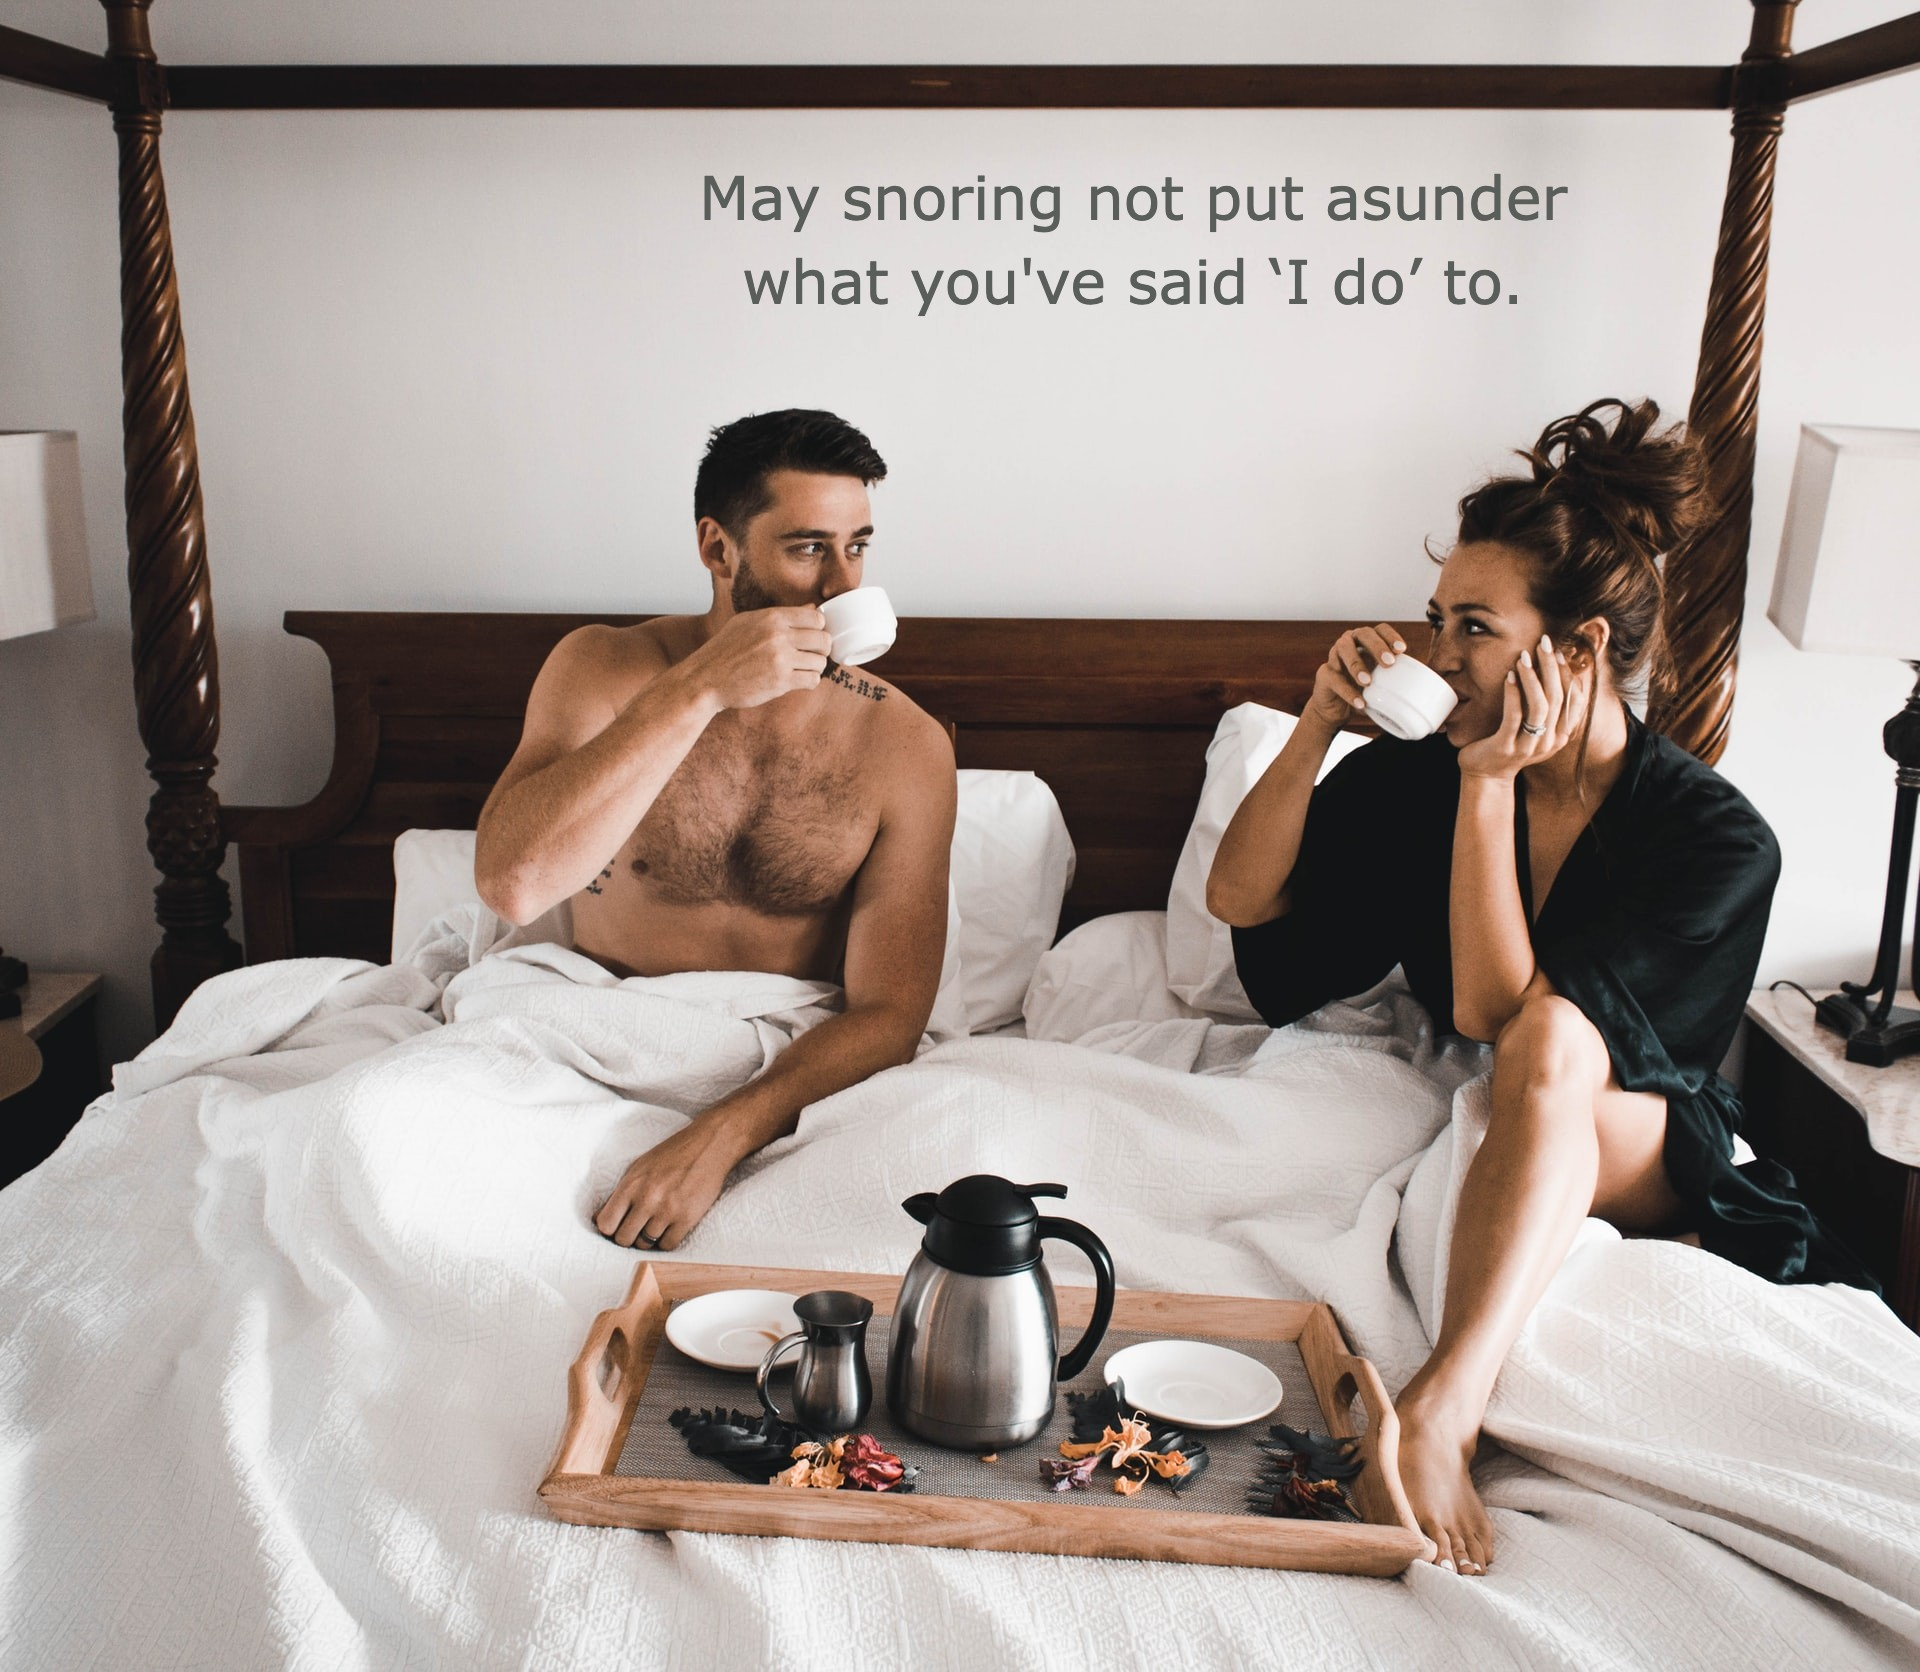 May snoring not put asunder what you've said 'I do' to.